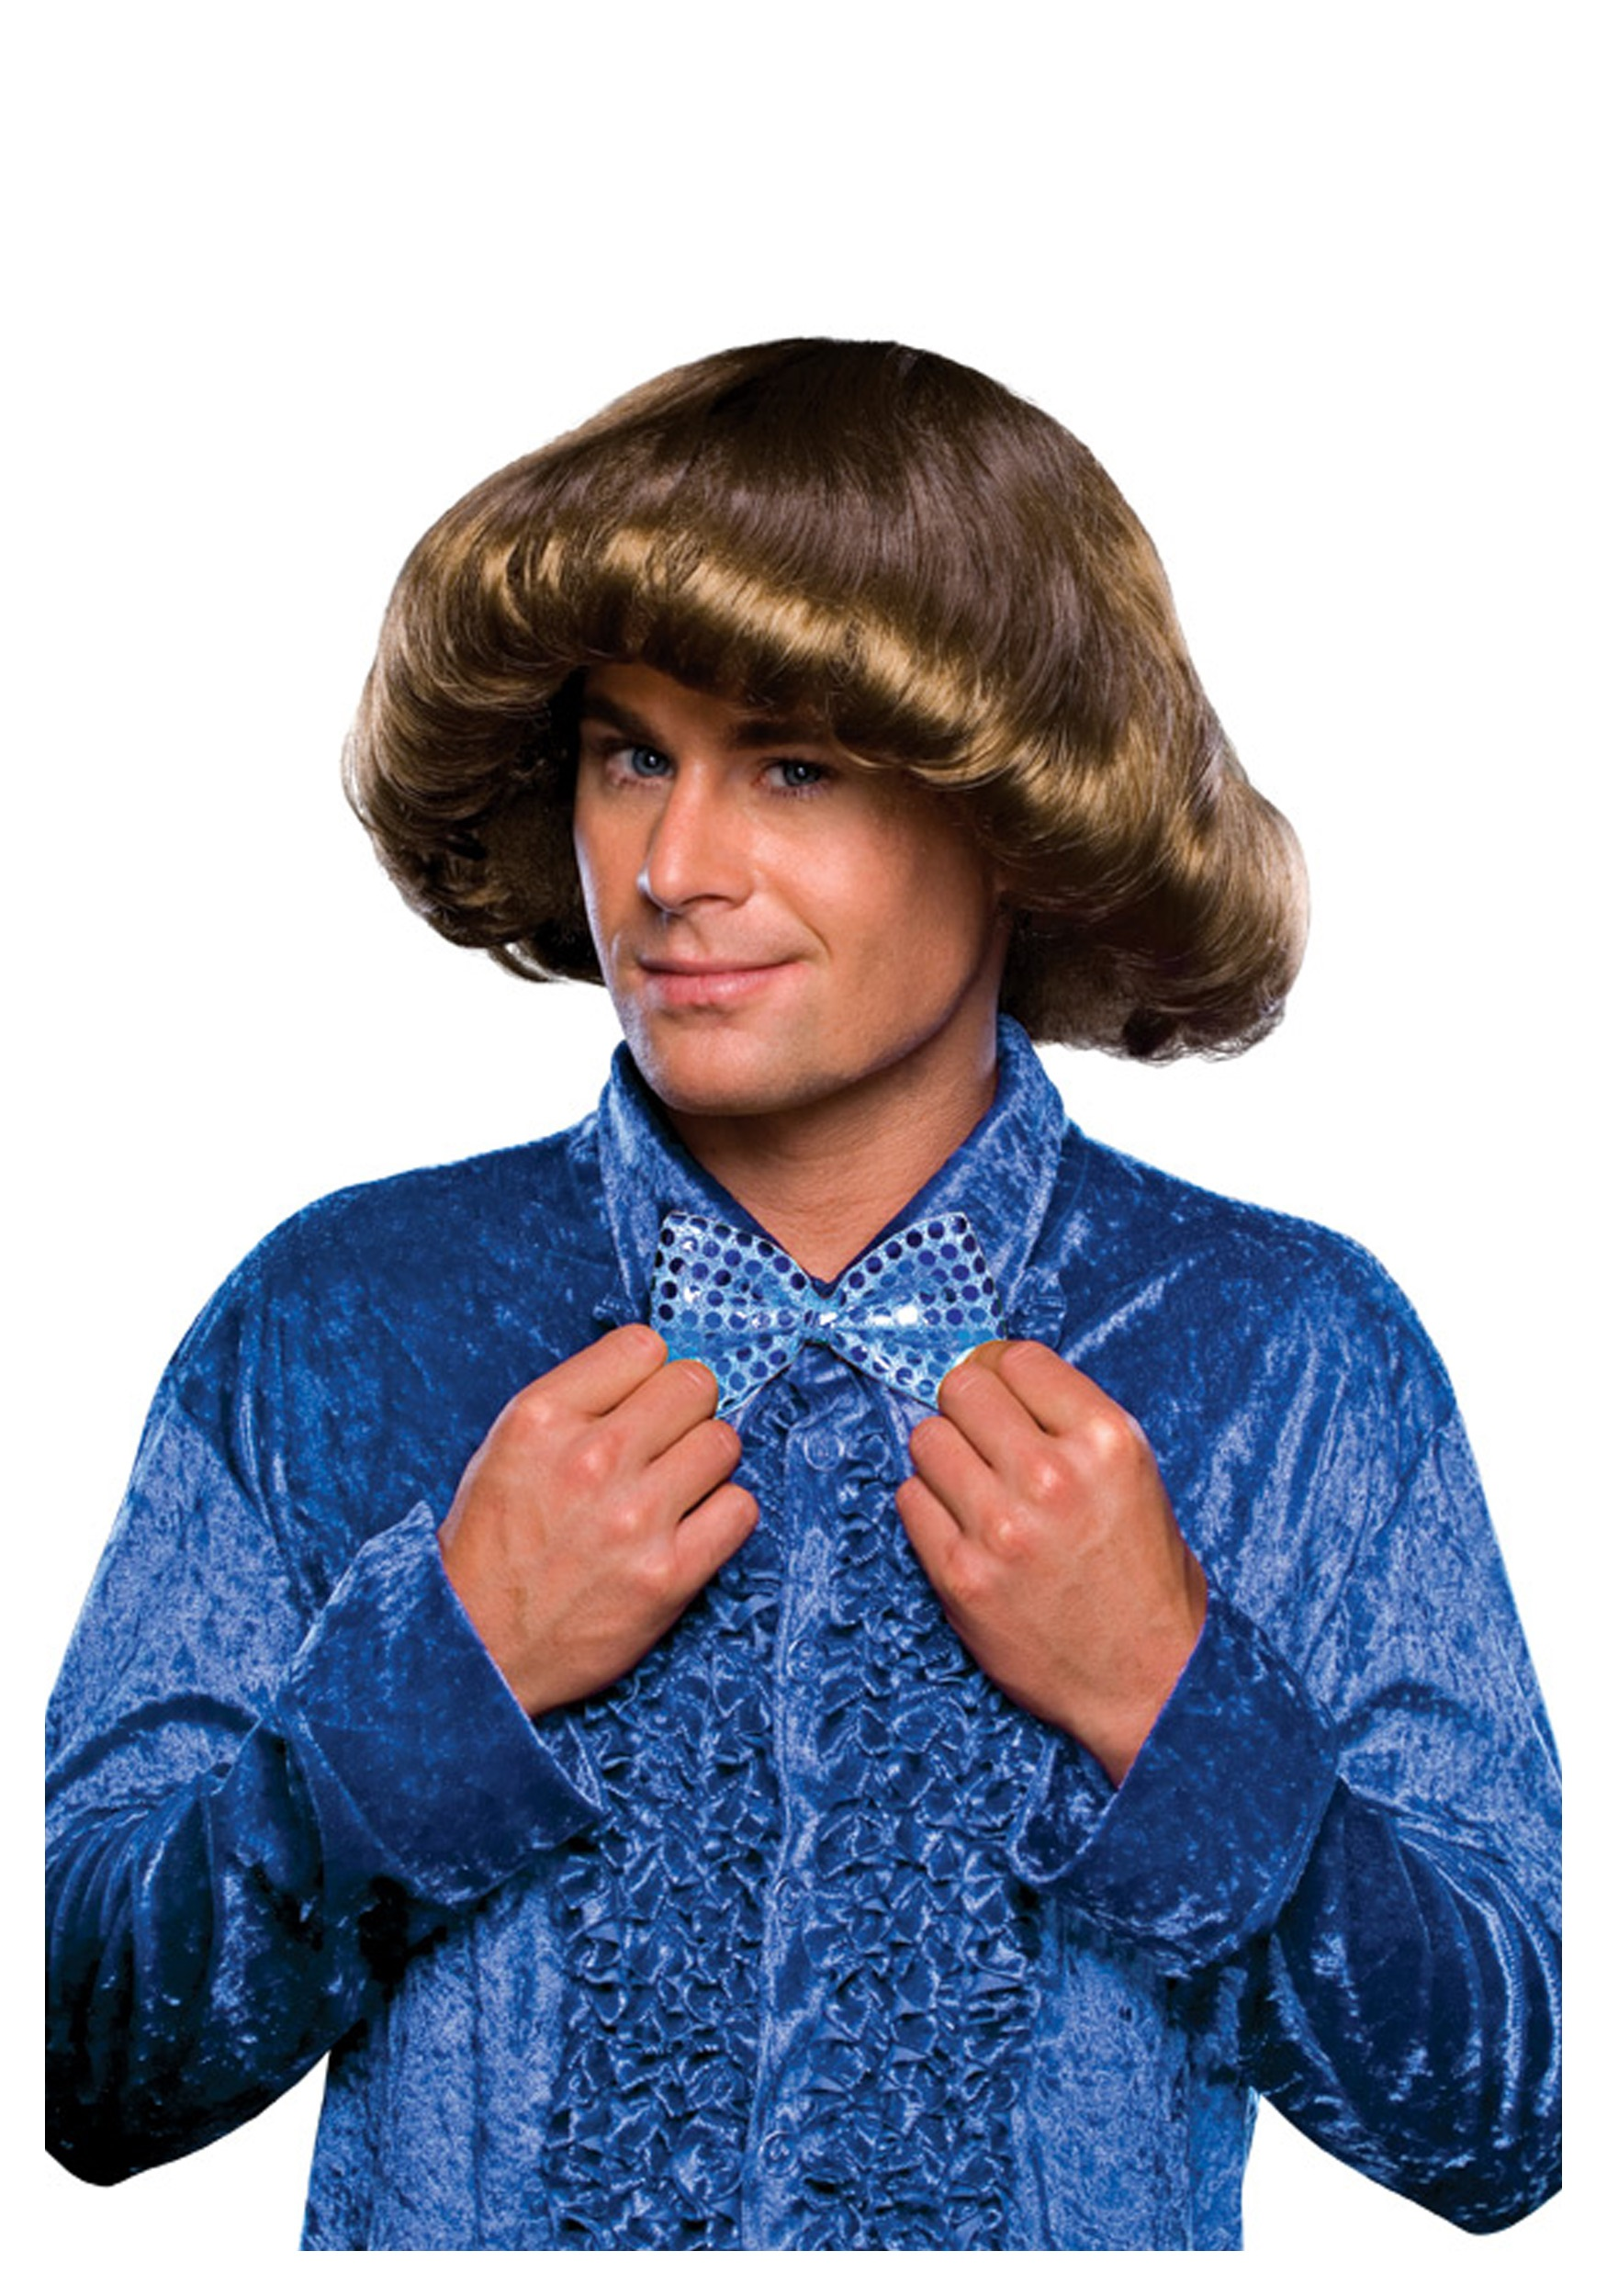 Mens 70s Prom Wig Halloween Costume Ideas 2016